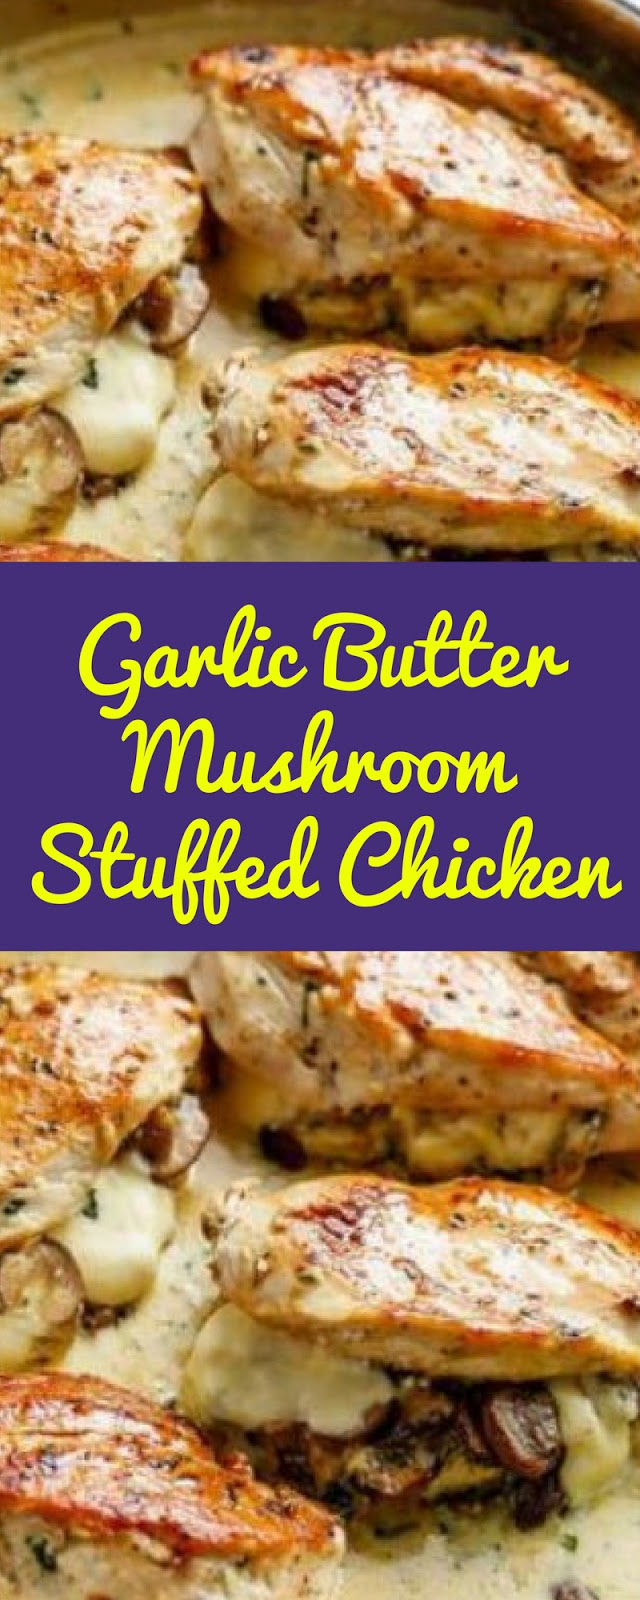 Garlic Butter Mushroom Stuffed Chicken